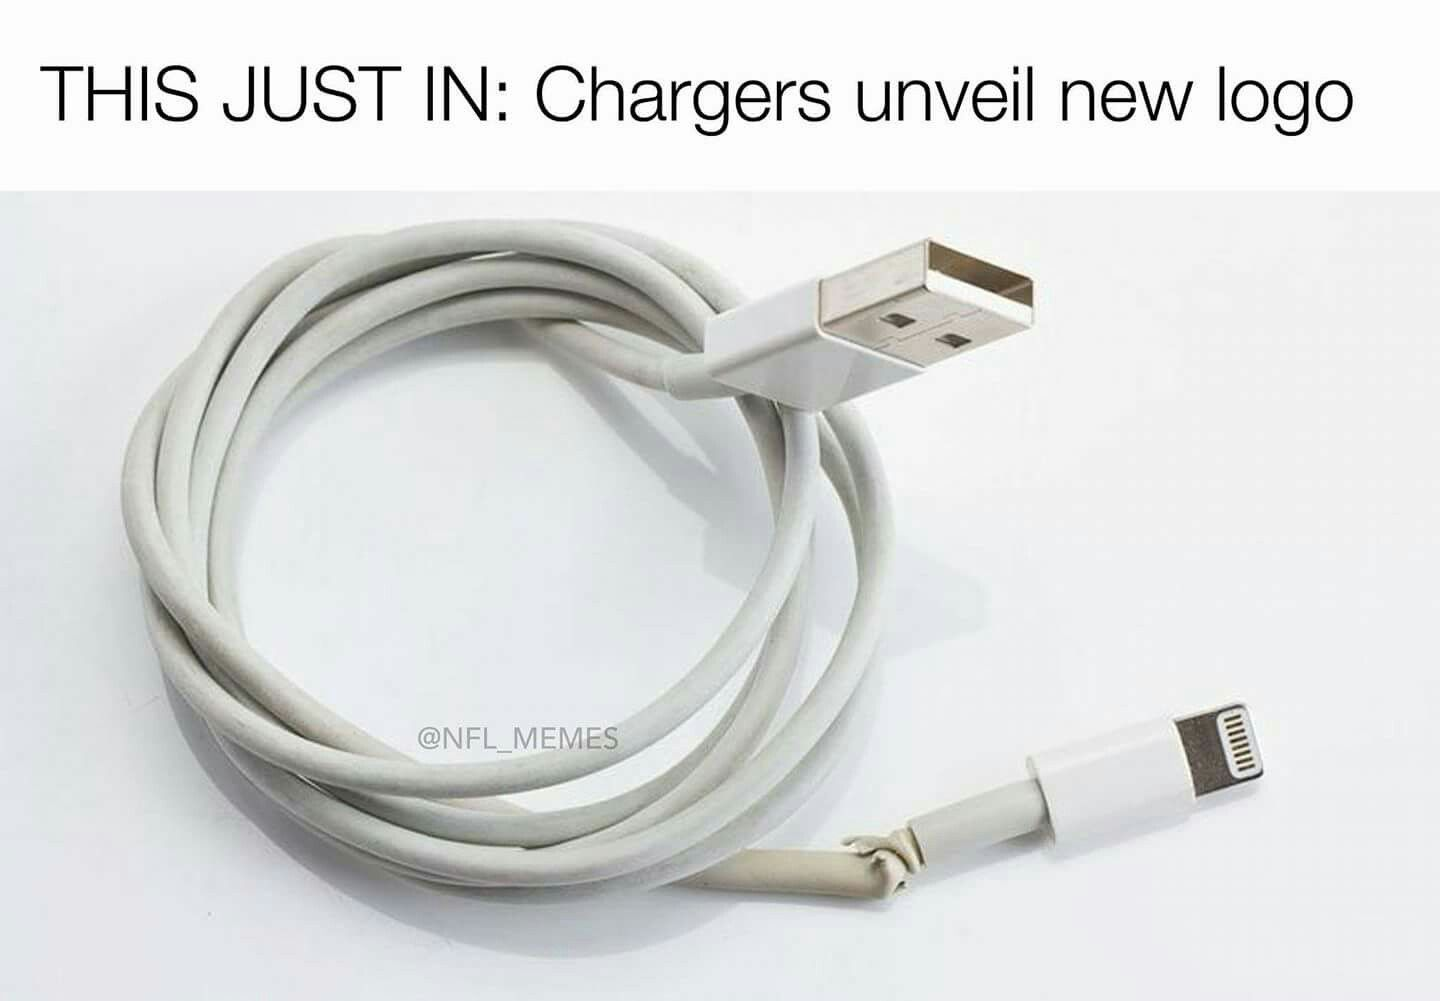 😂 I can't... #sandiego #chargers #LAchargers #bolt #nfl